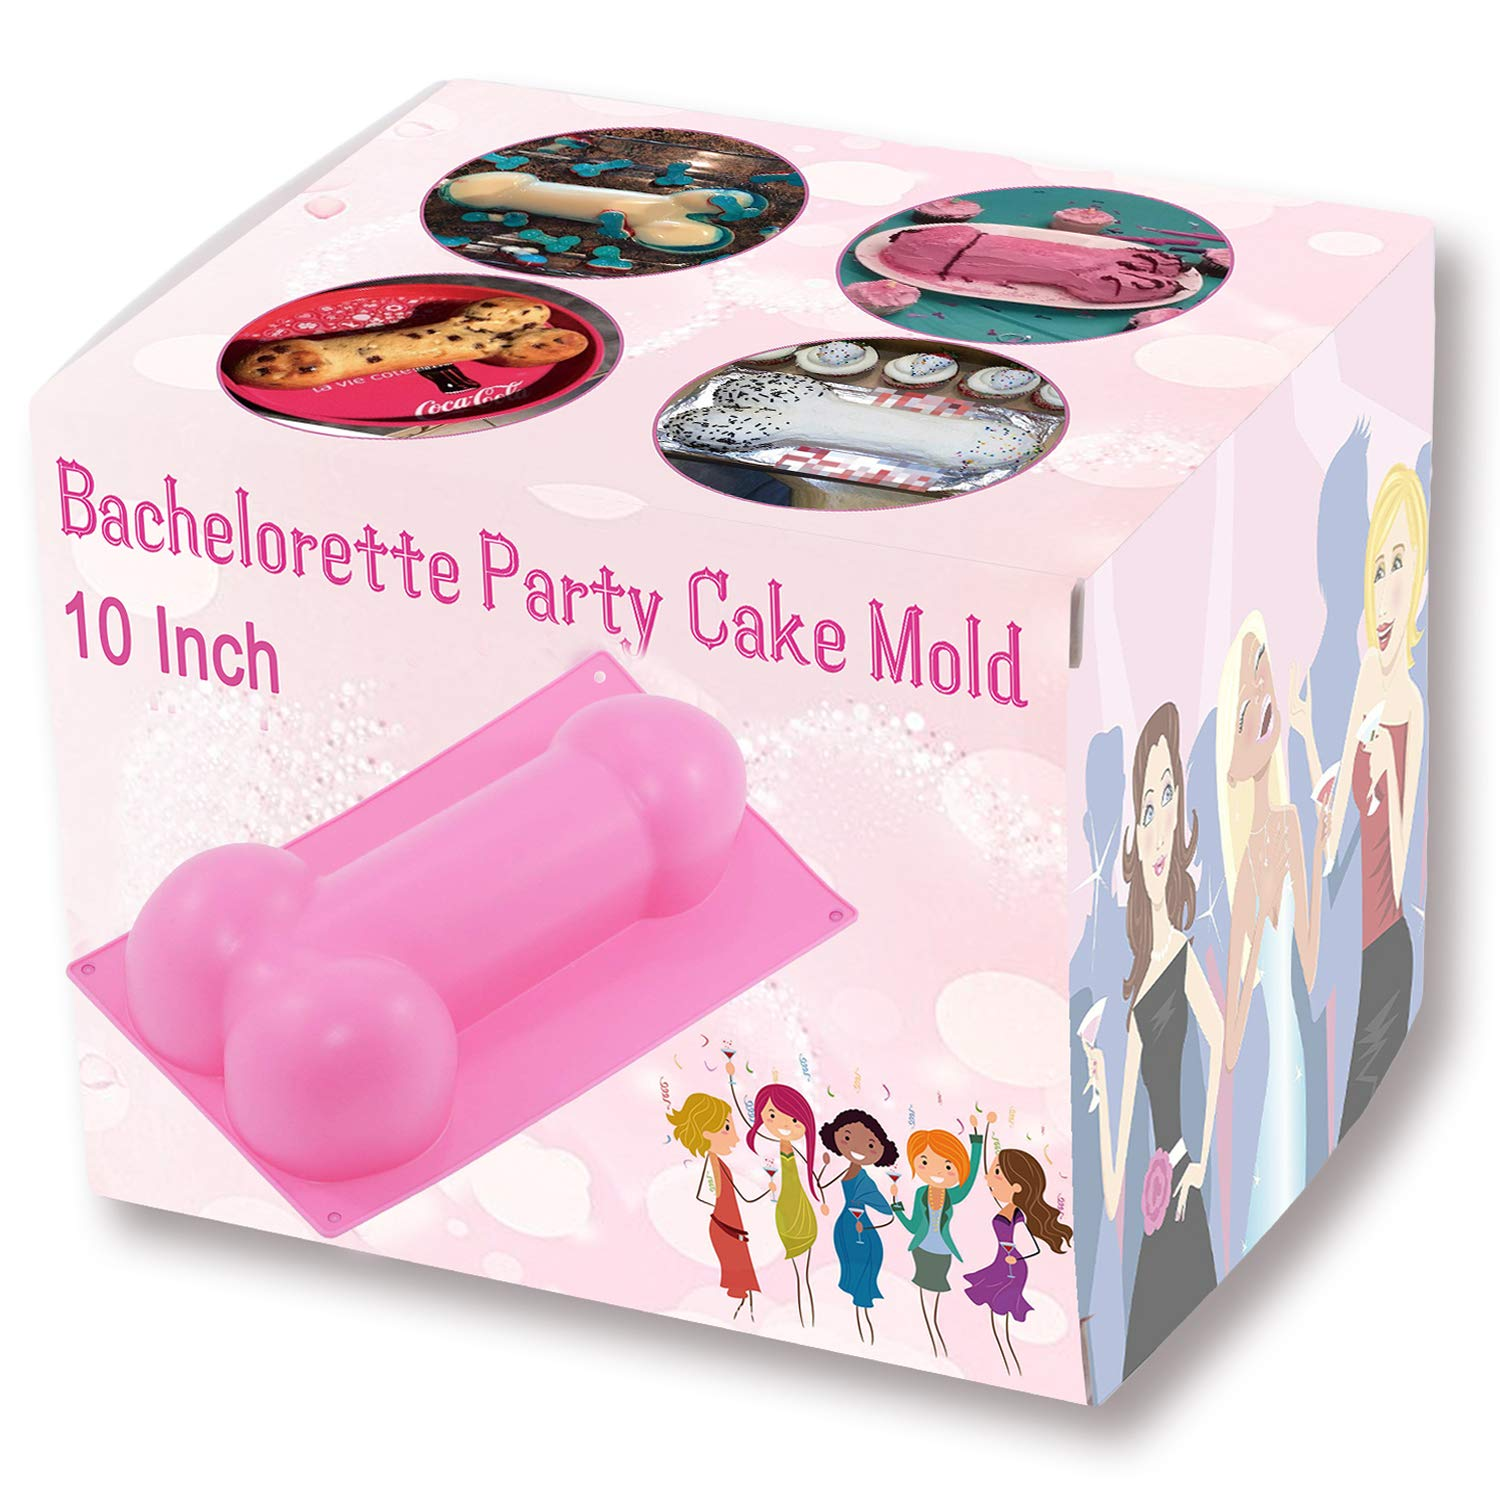 Bachelorette Party Mold 10 Inch - Upgraded Version - Non-stick Heat Resistance Silicone Cake Pan for Bachelorette Party Favors, Supplies, Gifts and Decorations (Blue) by Hinmay Hinmay Home